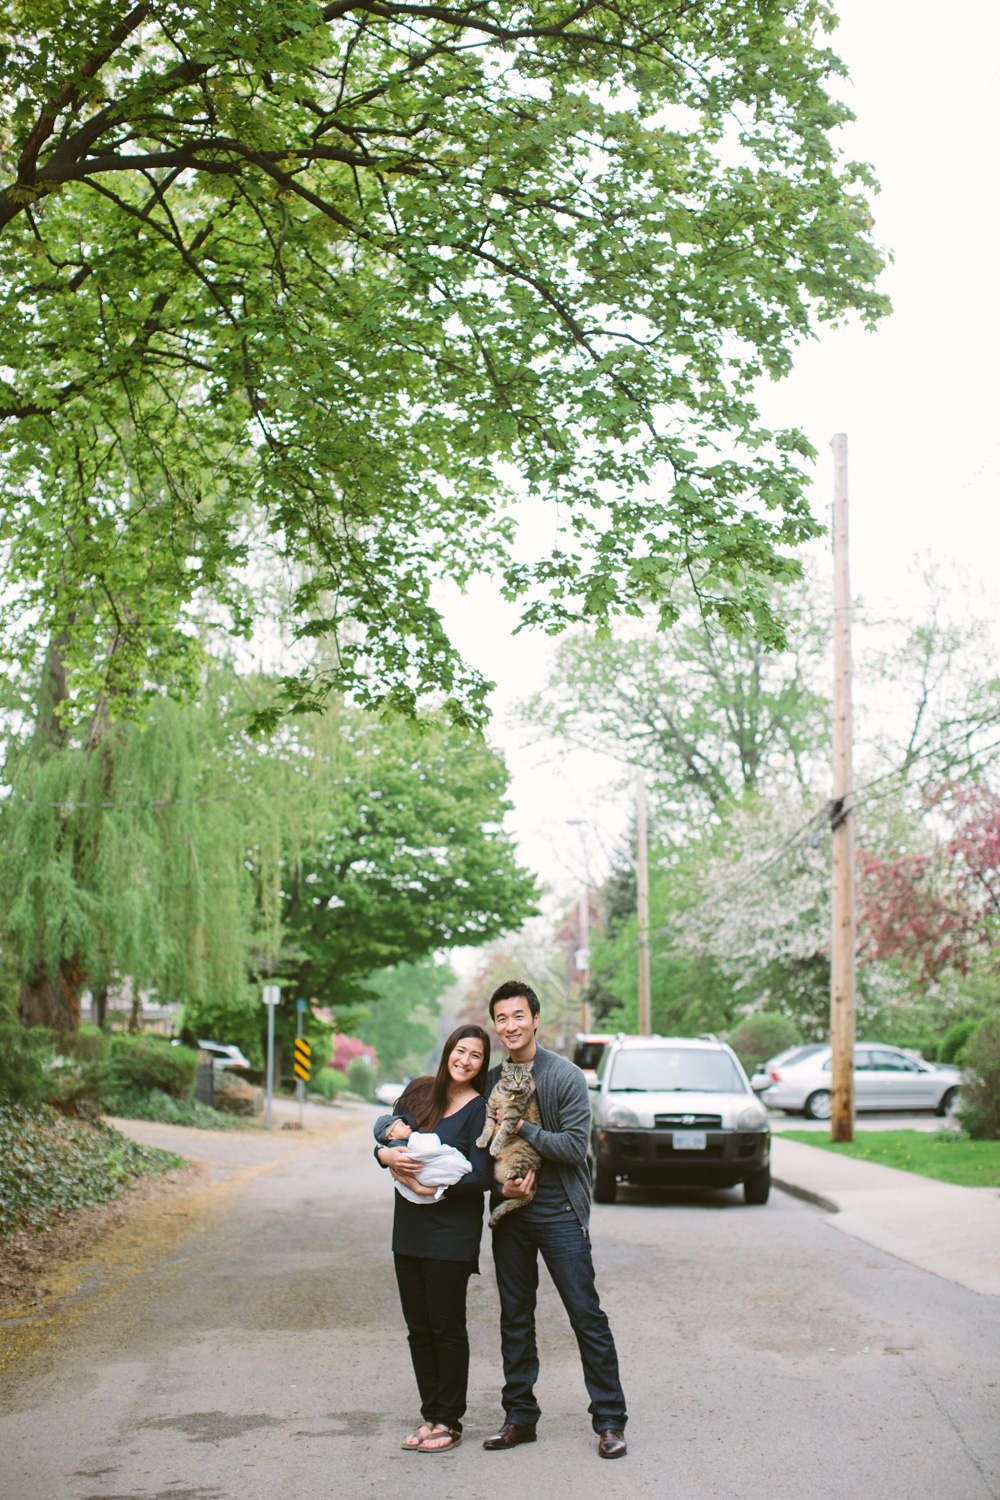 Melissa-Sung-Photography-Family-Toronto-Hamilton-Photographer014.jpg